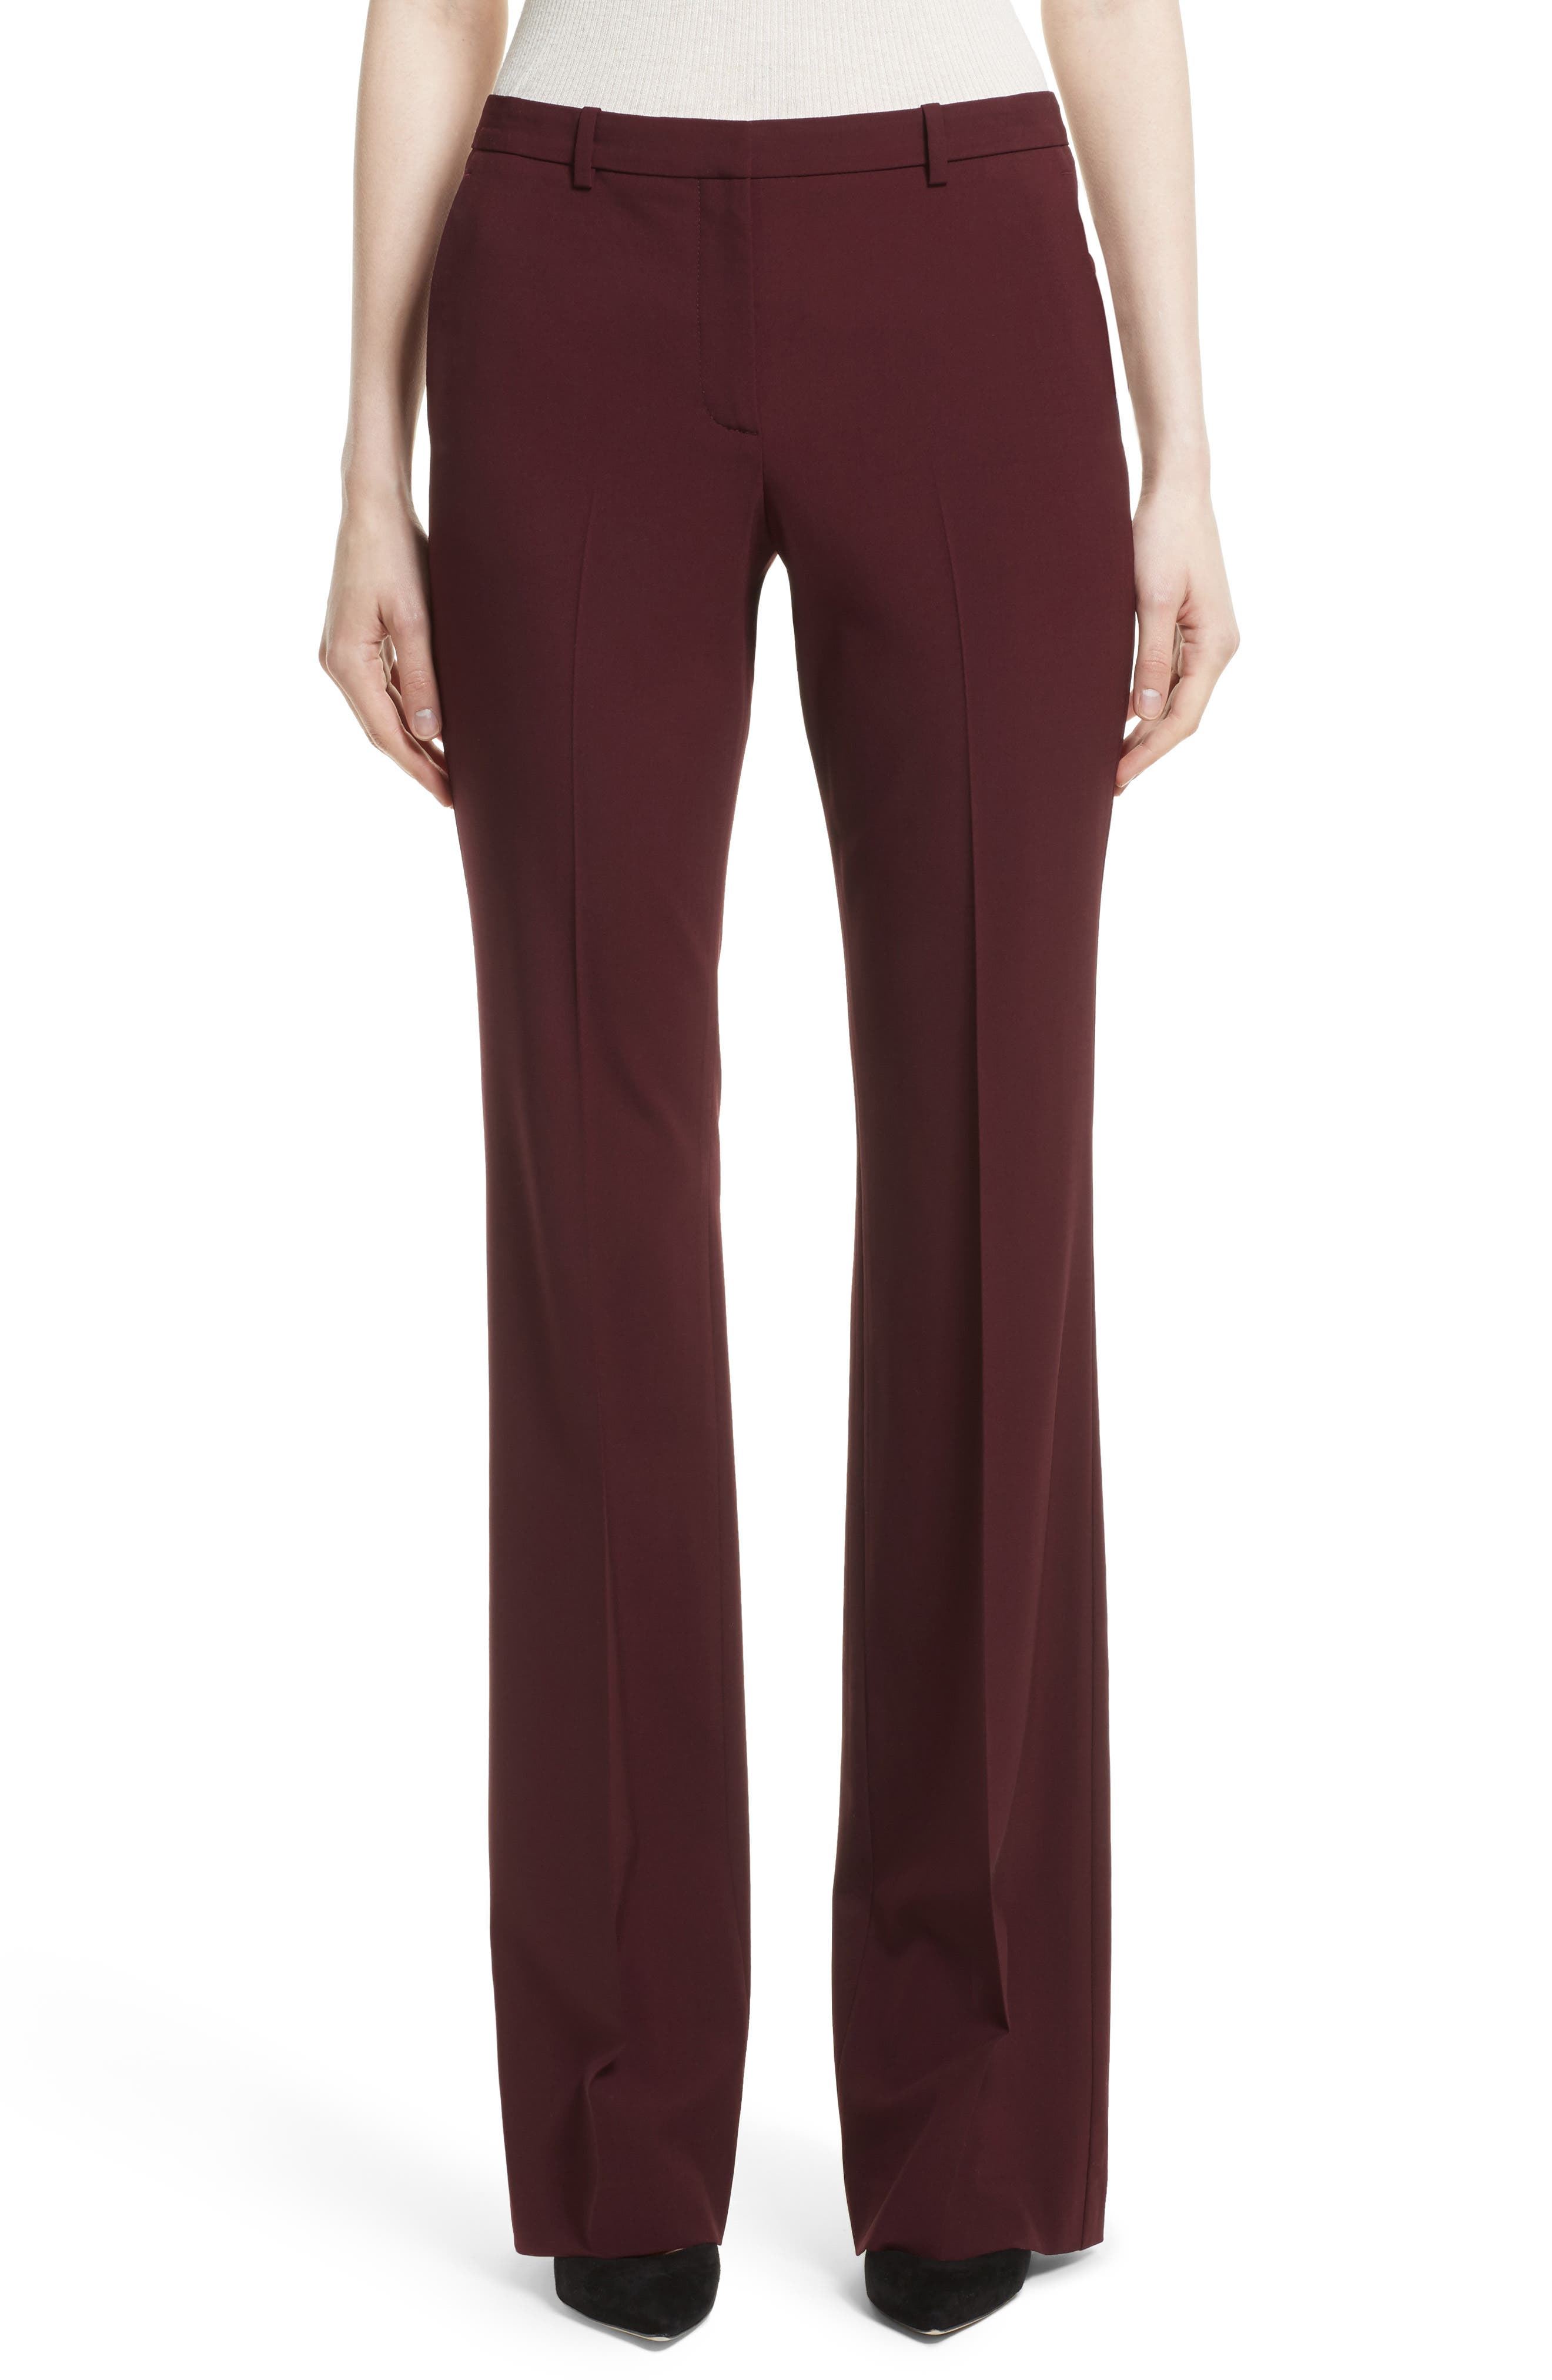 Demitria 2 Flare Leg Stretch Wool Pants,                         Main,                         color, Dark Currant